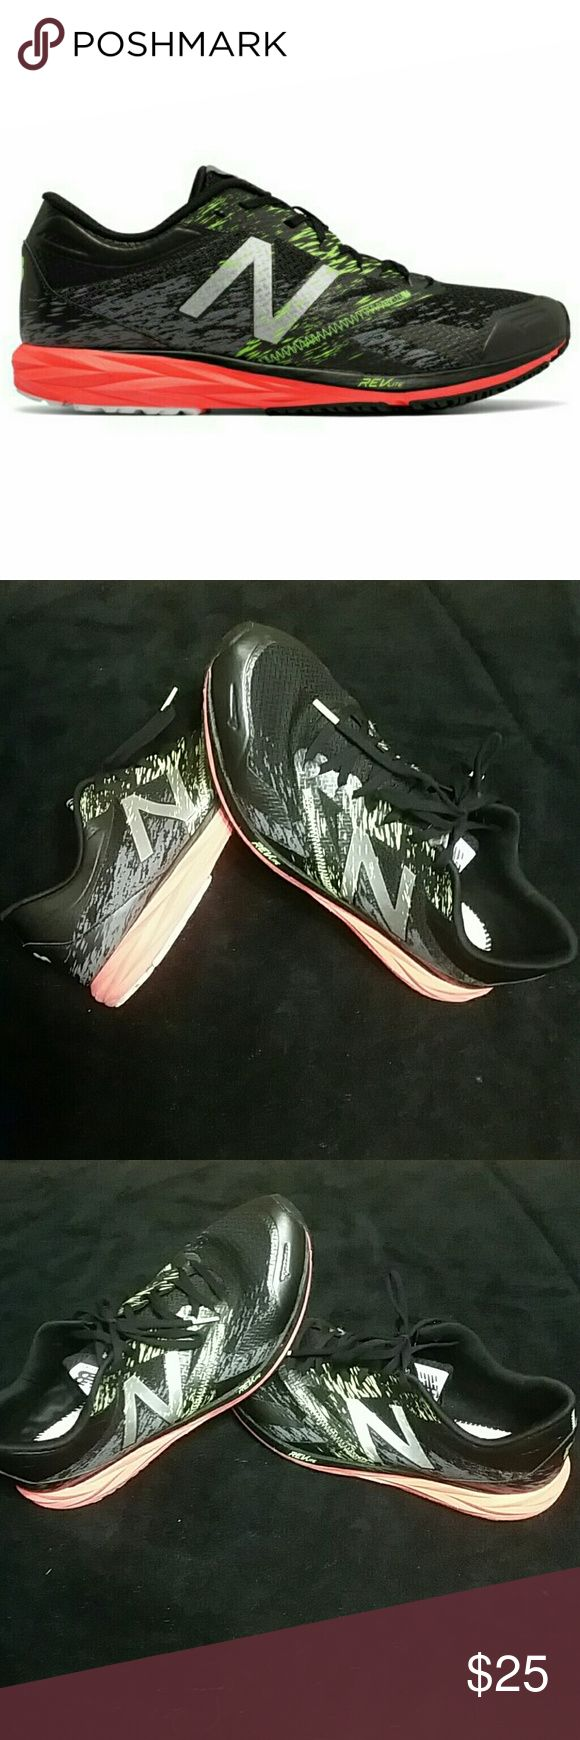 New Balance Revlite Black with accents of orange and green excellent running shoe super light fits like a glove on your foot. They are basically new minor wear on the sole only wore 3 times. New Balance Shoes Athletic Shoes